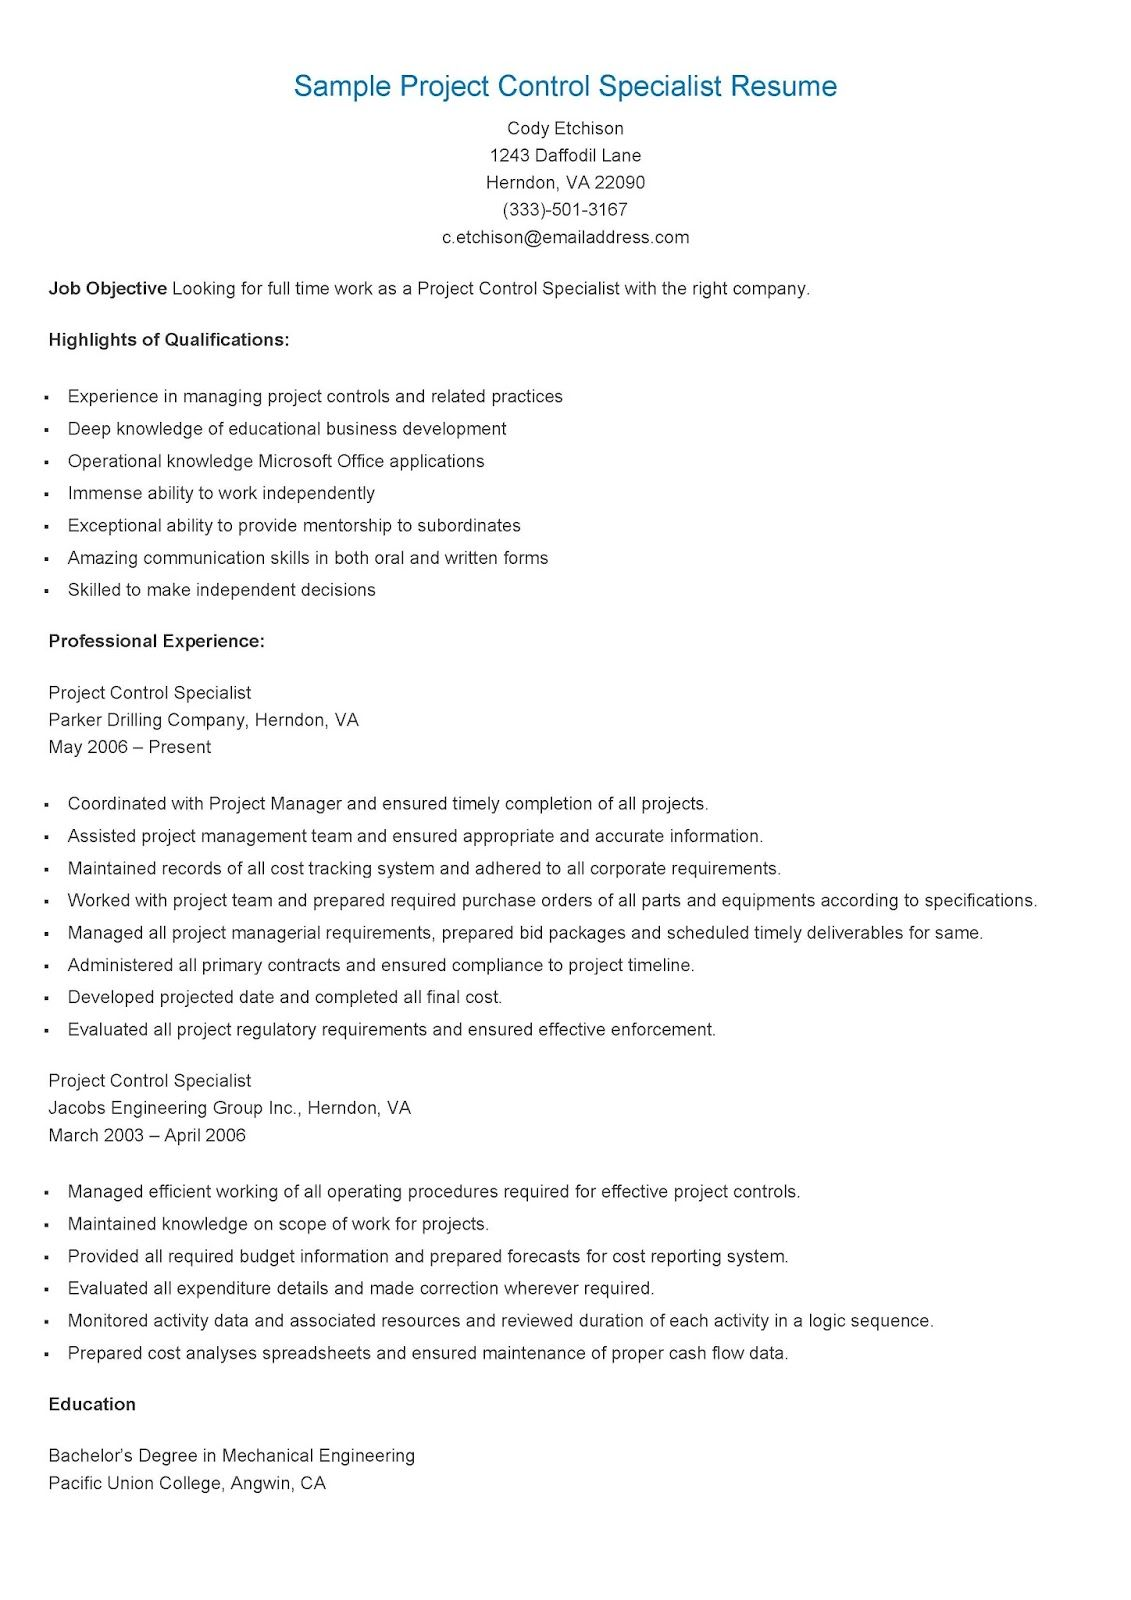 Sample Project Control Specialist Resume  Resame